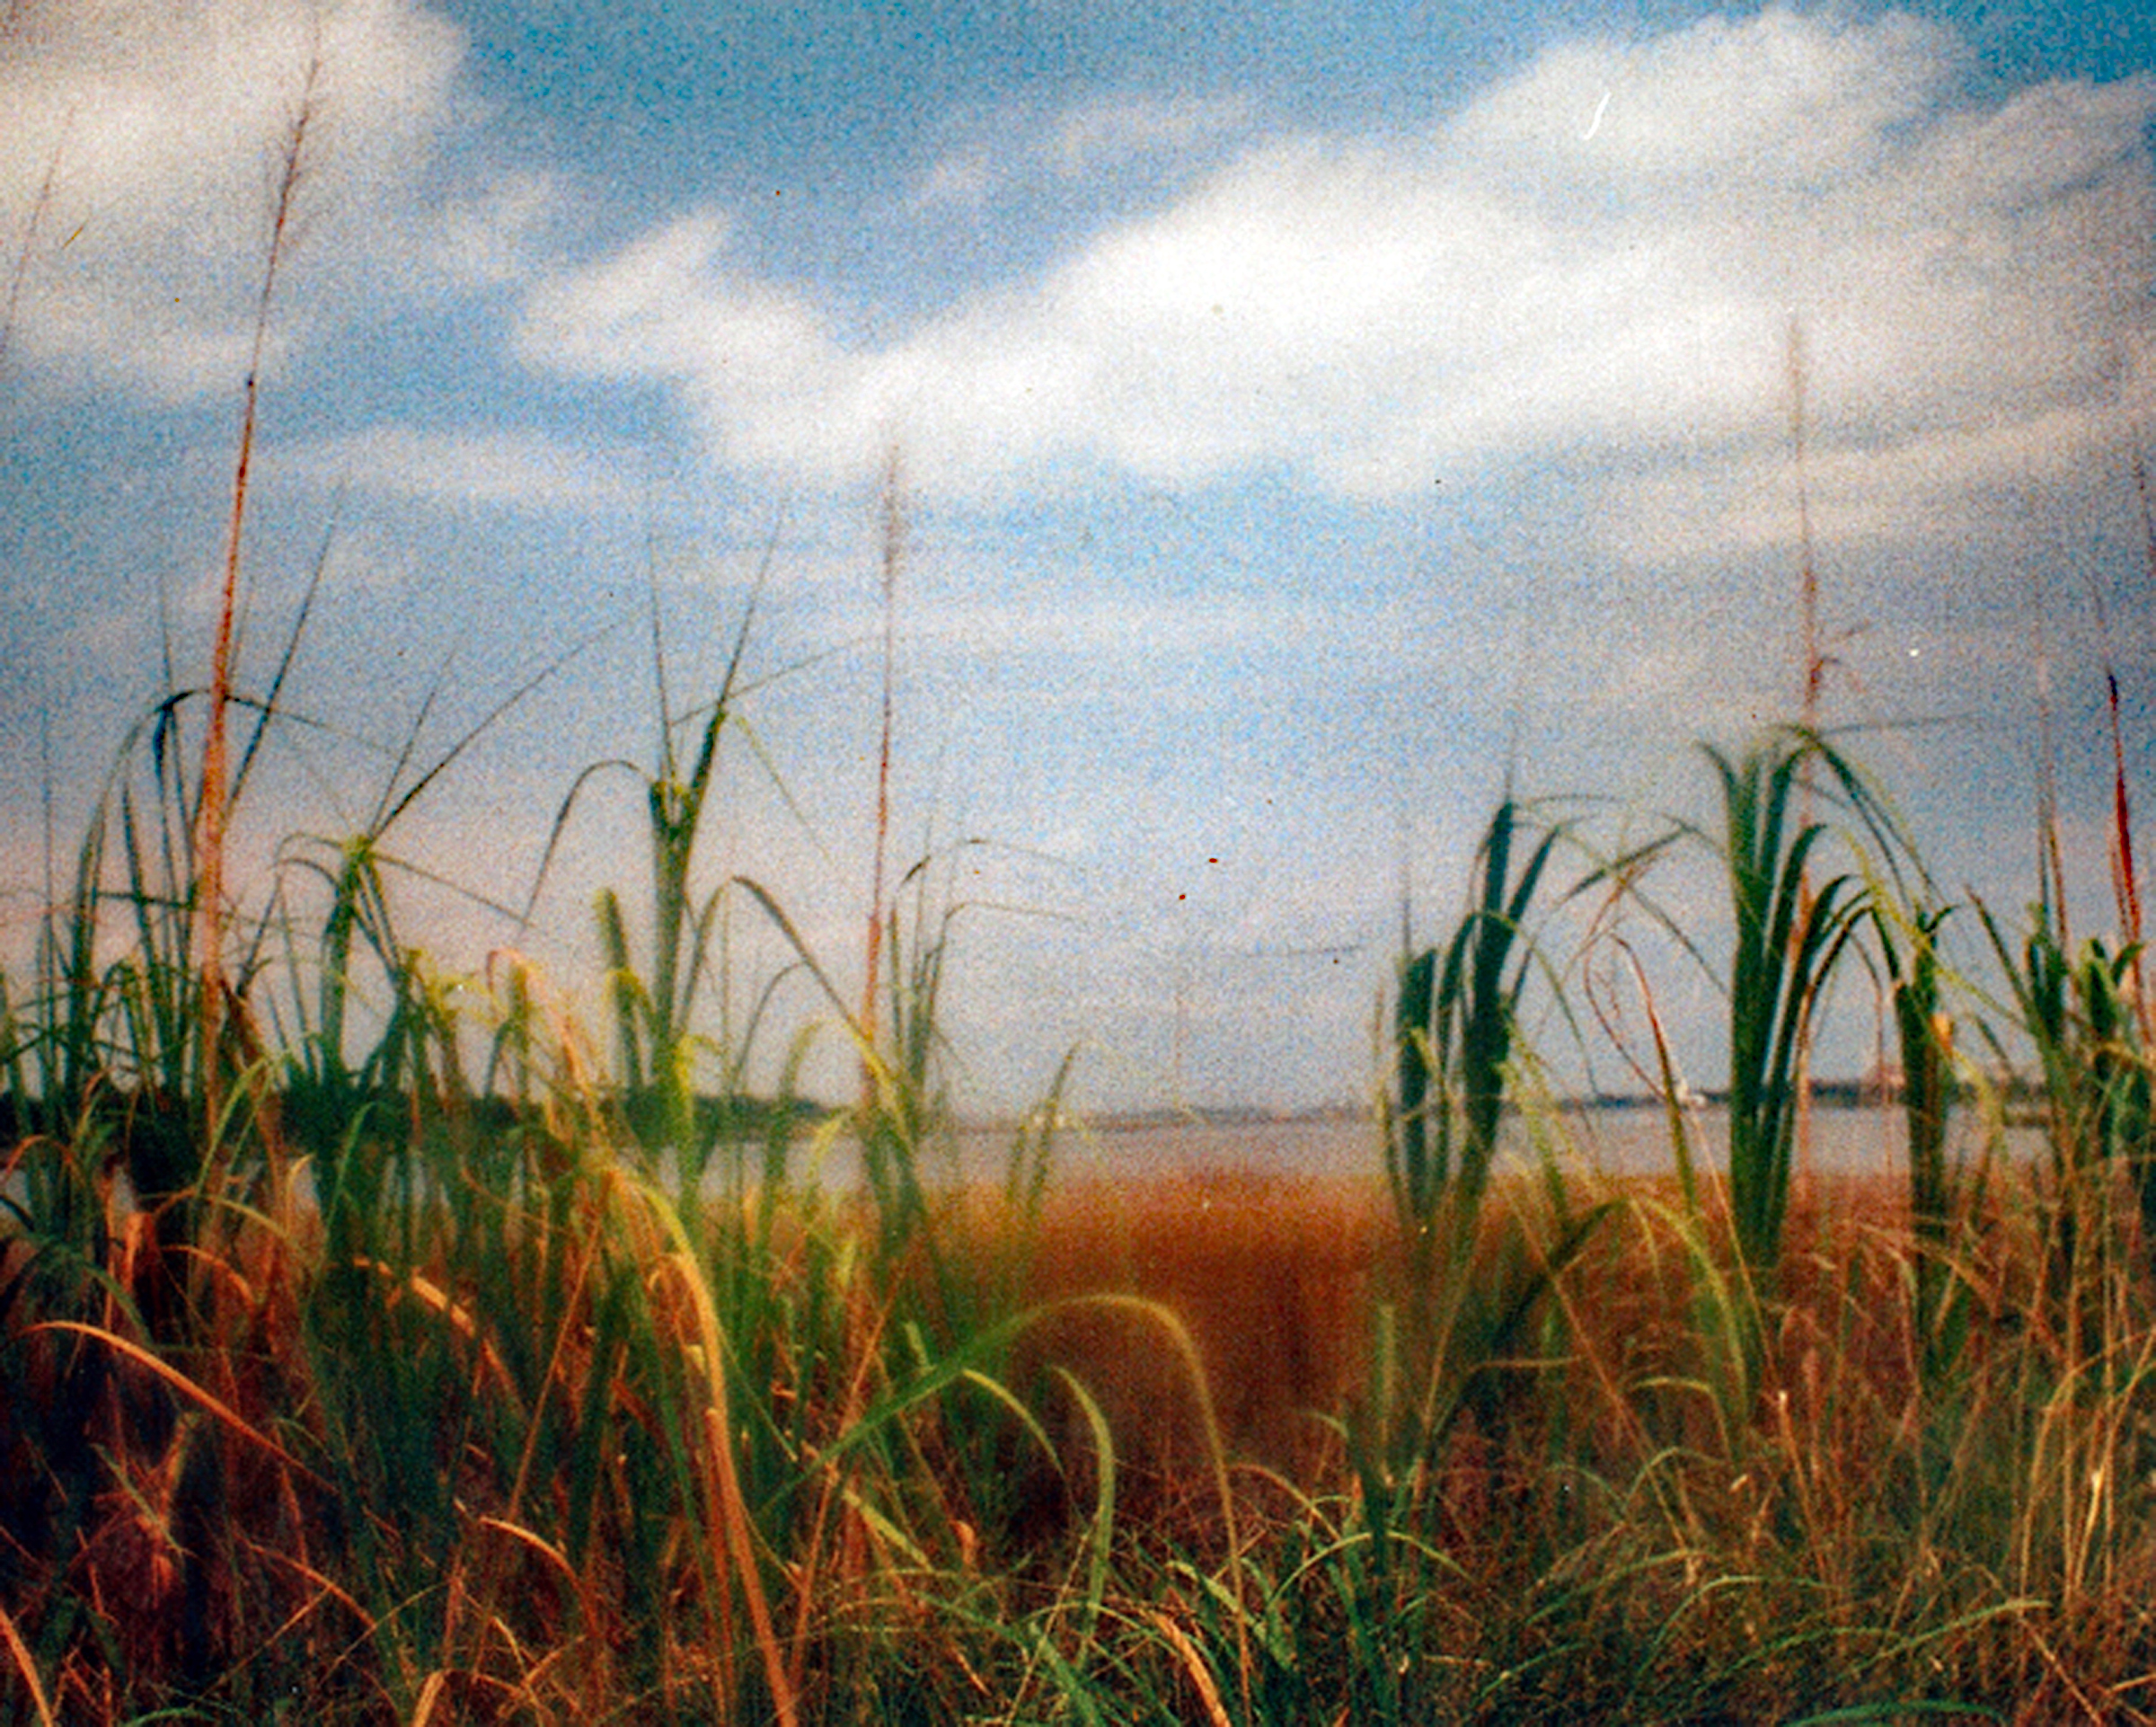 north carolina reeds 1000.jpg